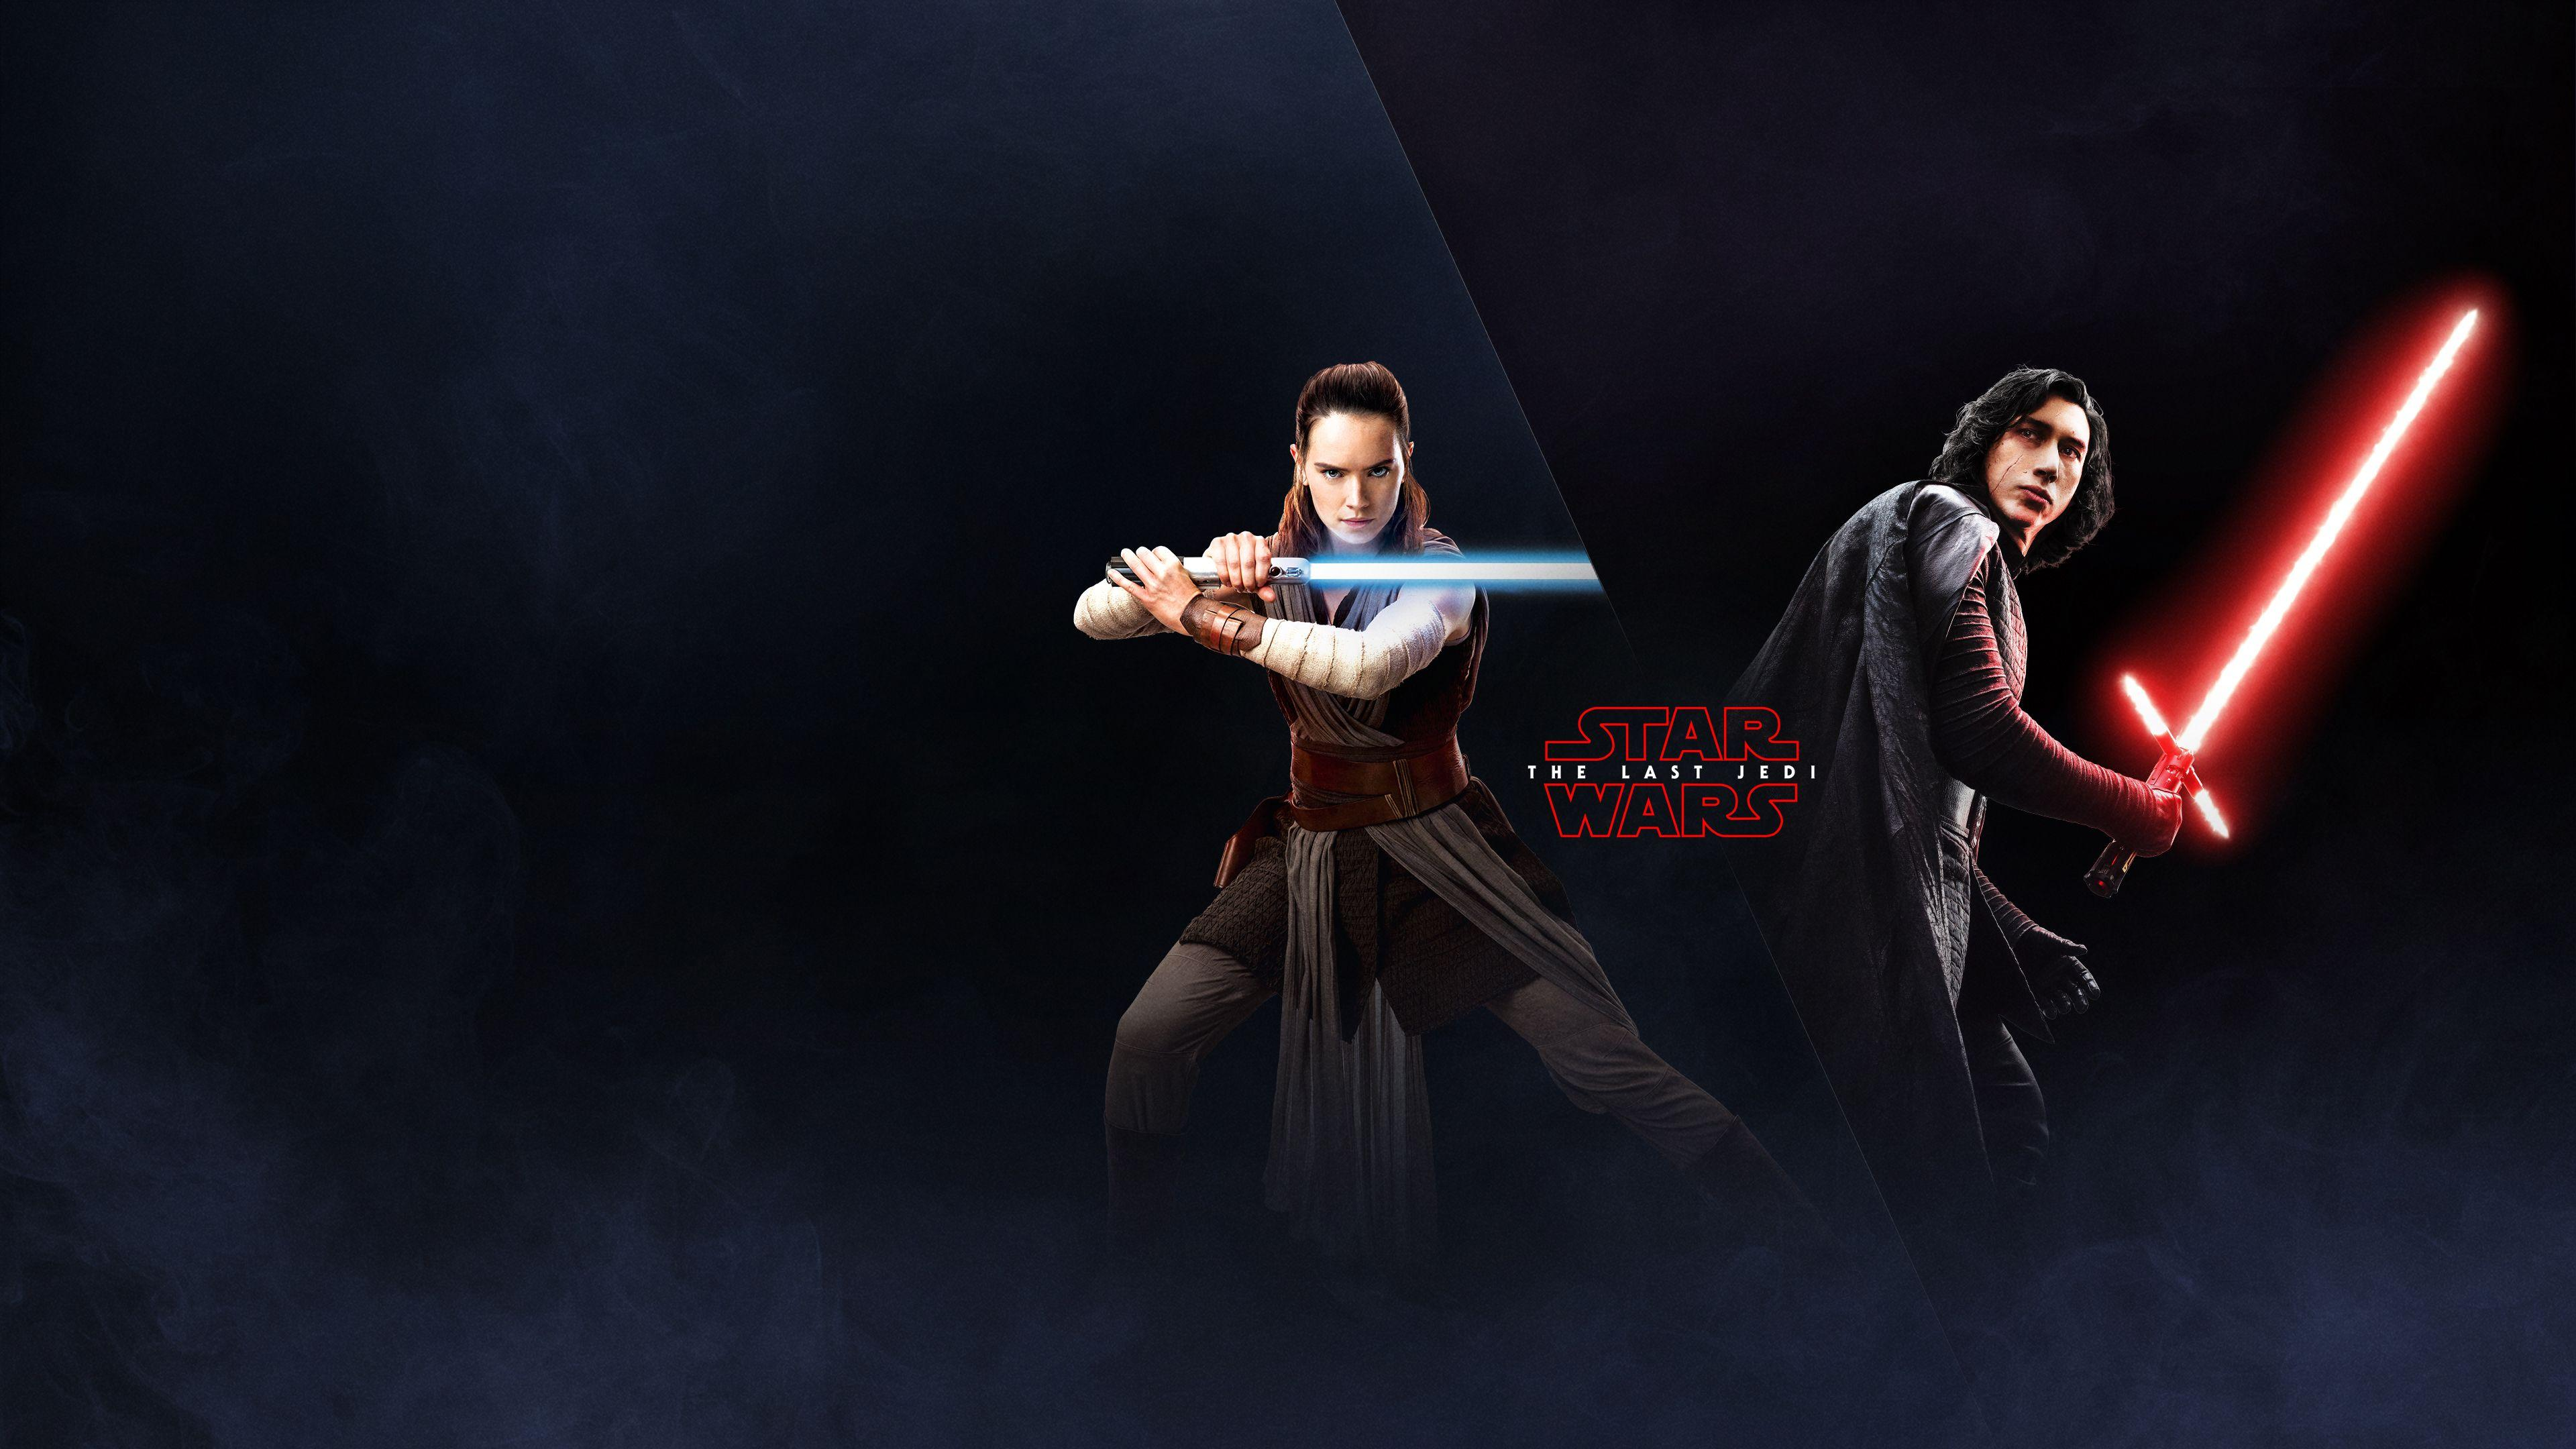 The Last Jedi Wallpapers Rey and Kylo Ren EA Battlefront 2 Poster